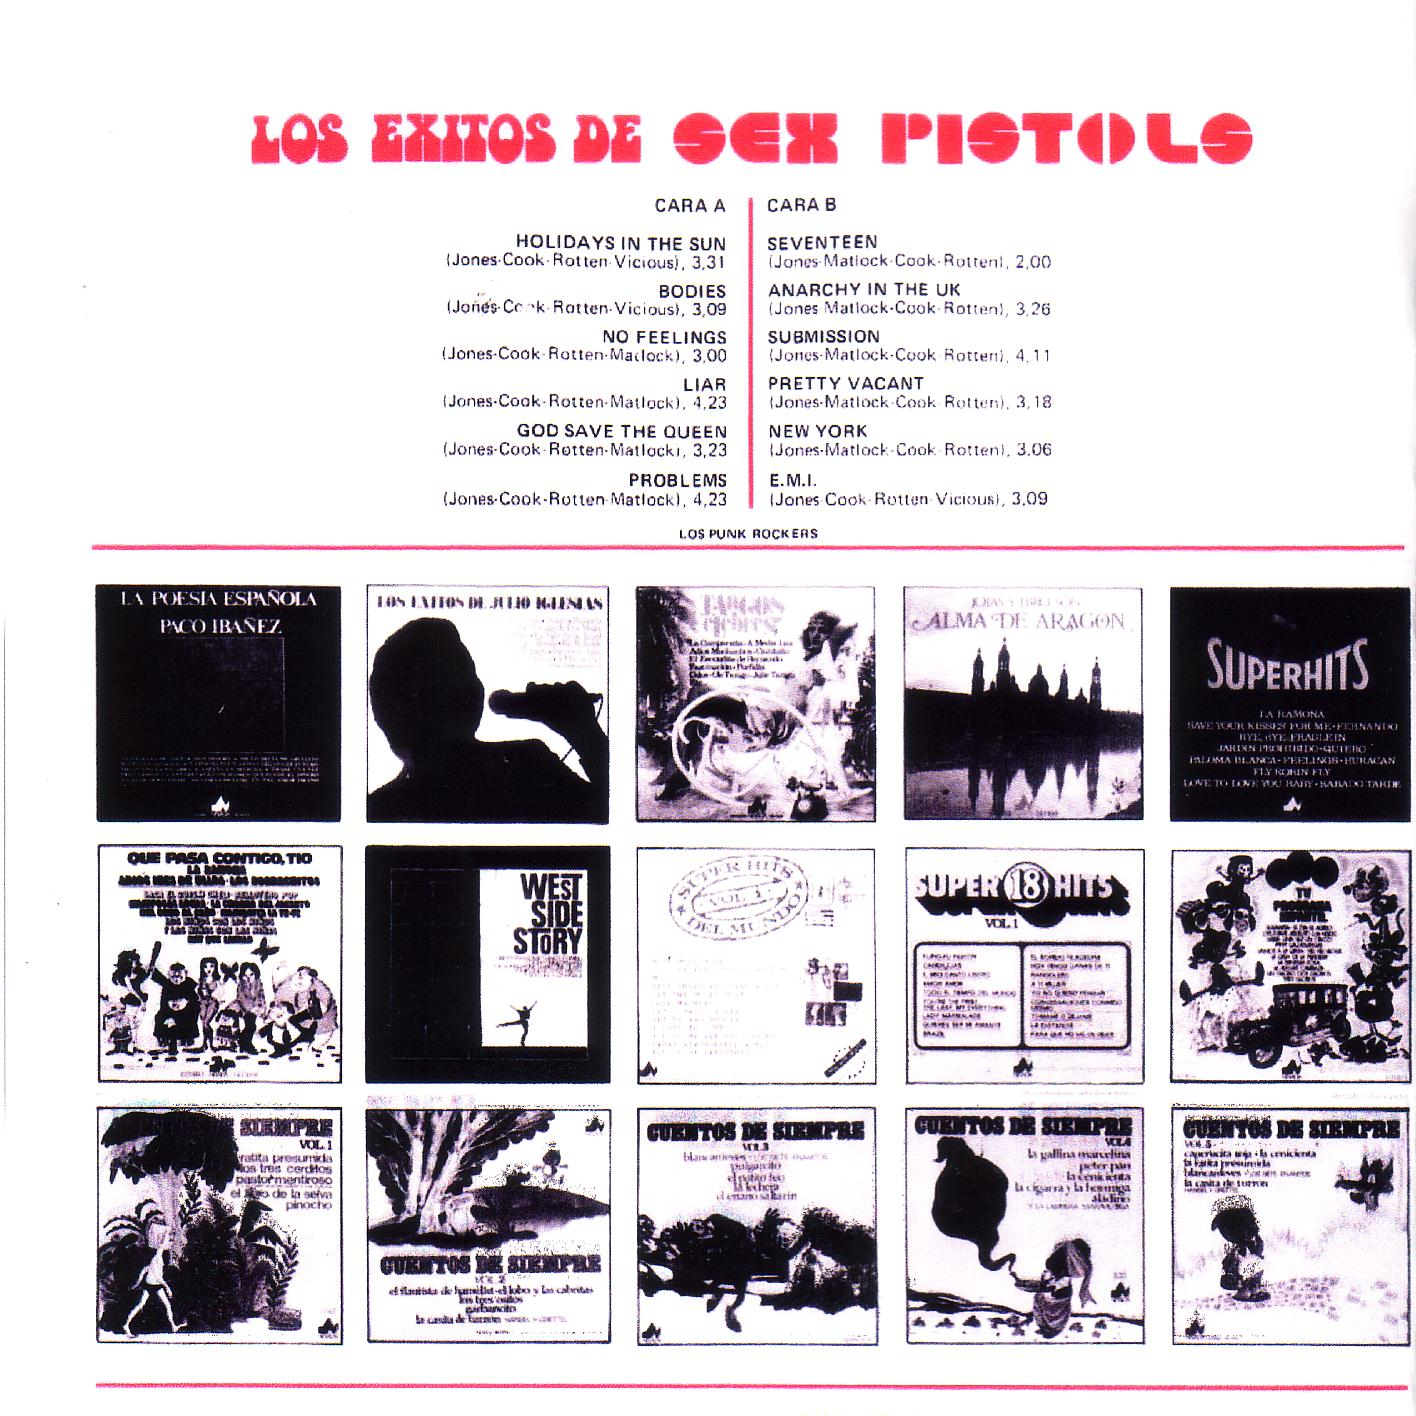 of a Spanish Sex Pistols